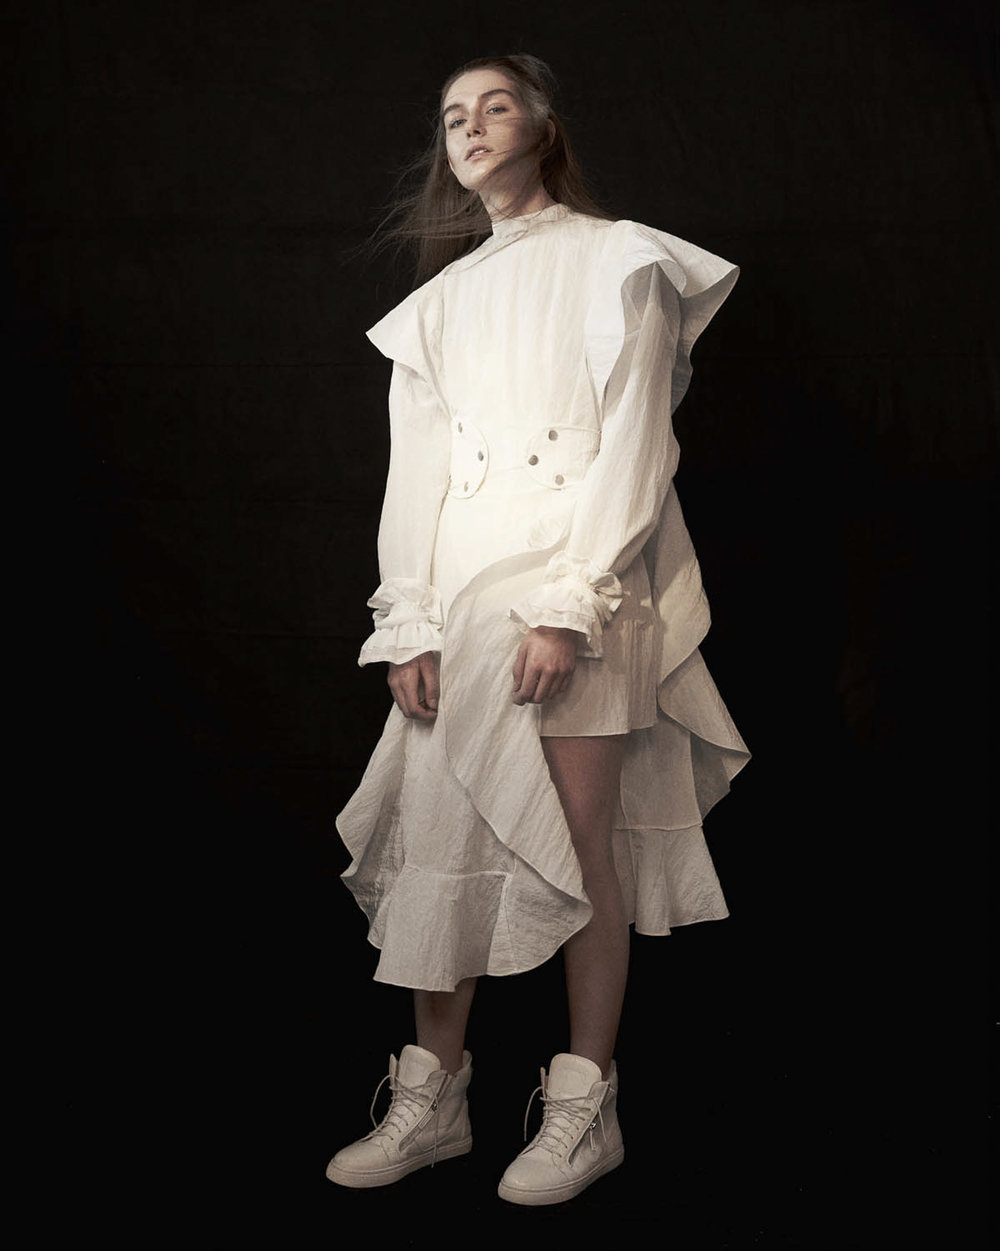 White textured nylon top worn under apron dress with removable belt from A.W.A.K.E. White cotton cuffs from Renli Su White sneakers from Fengchen Wang